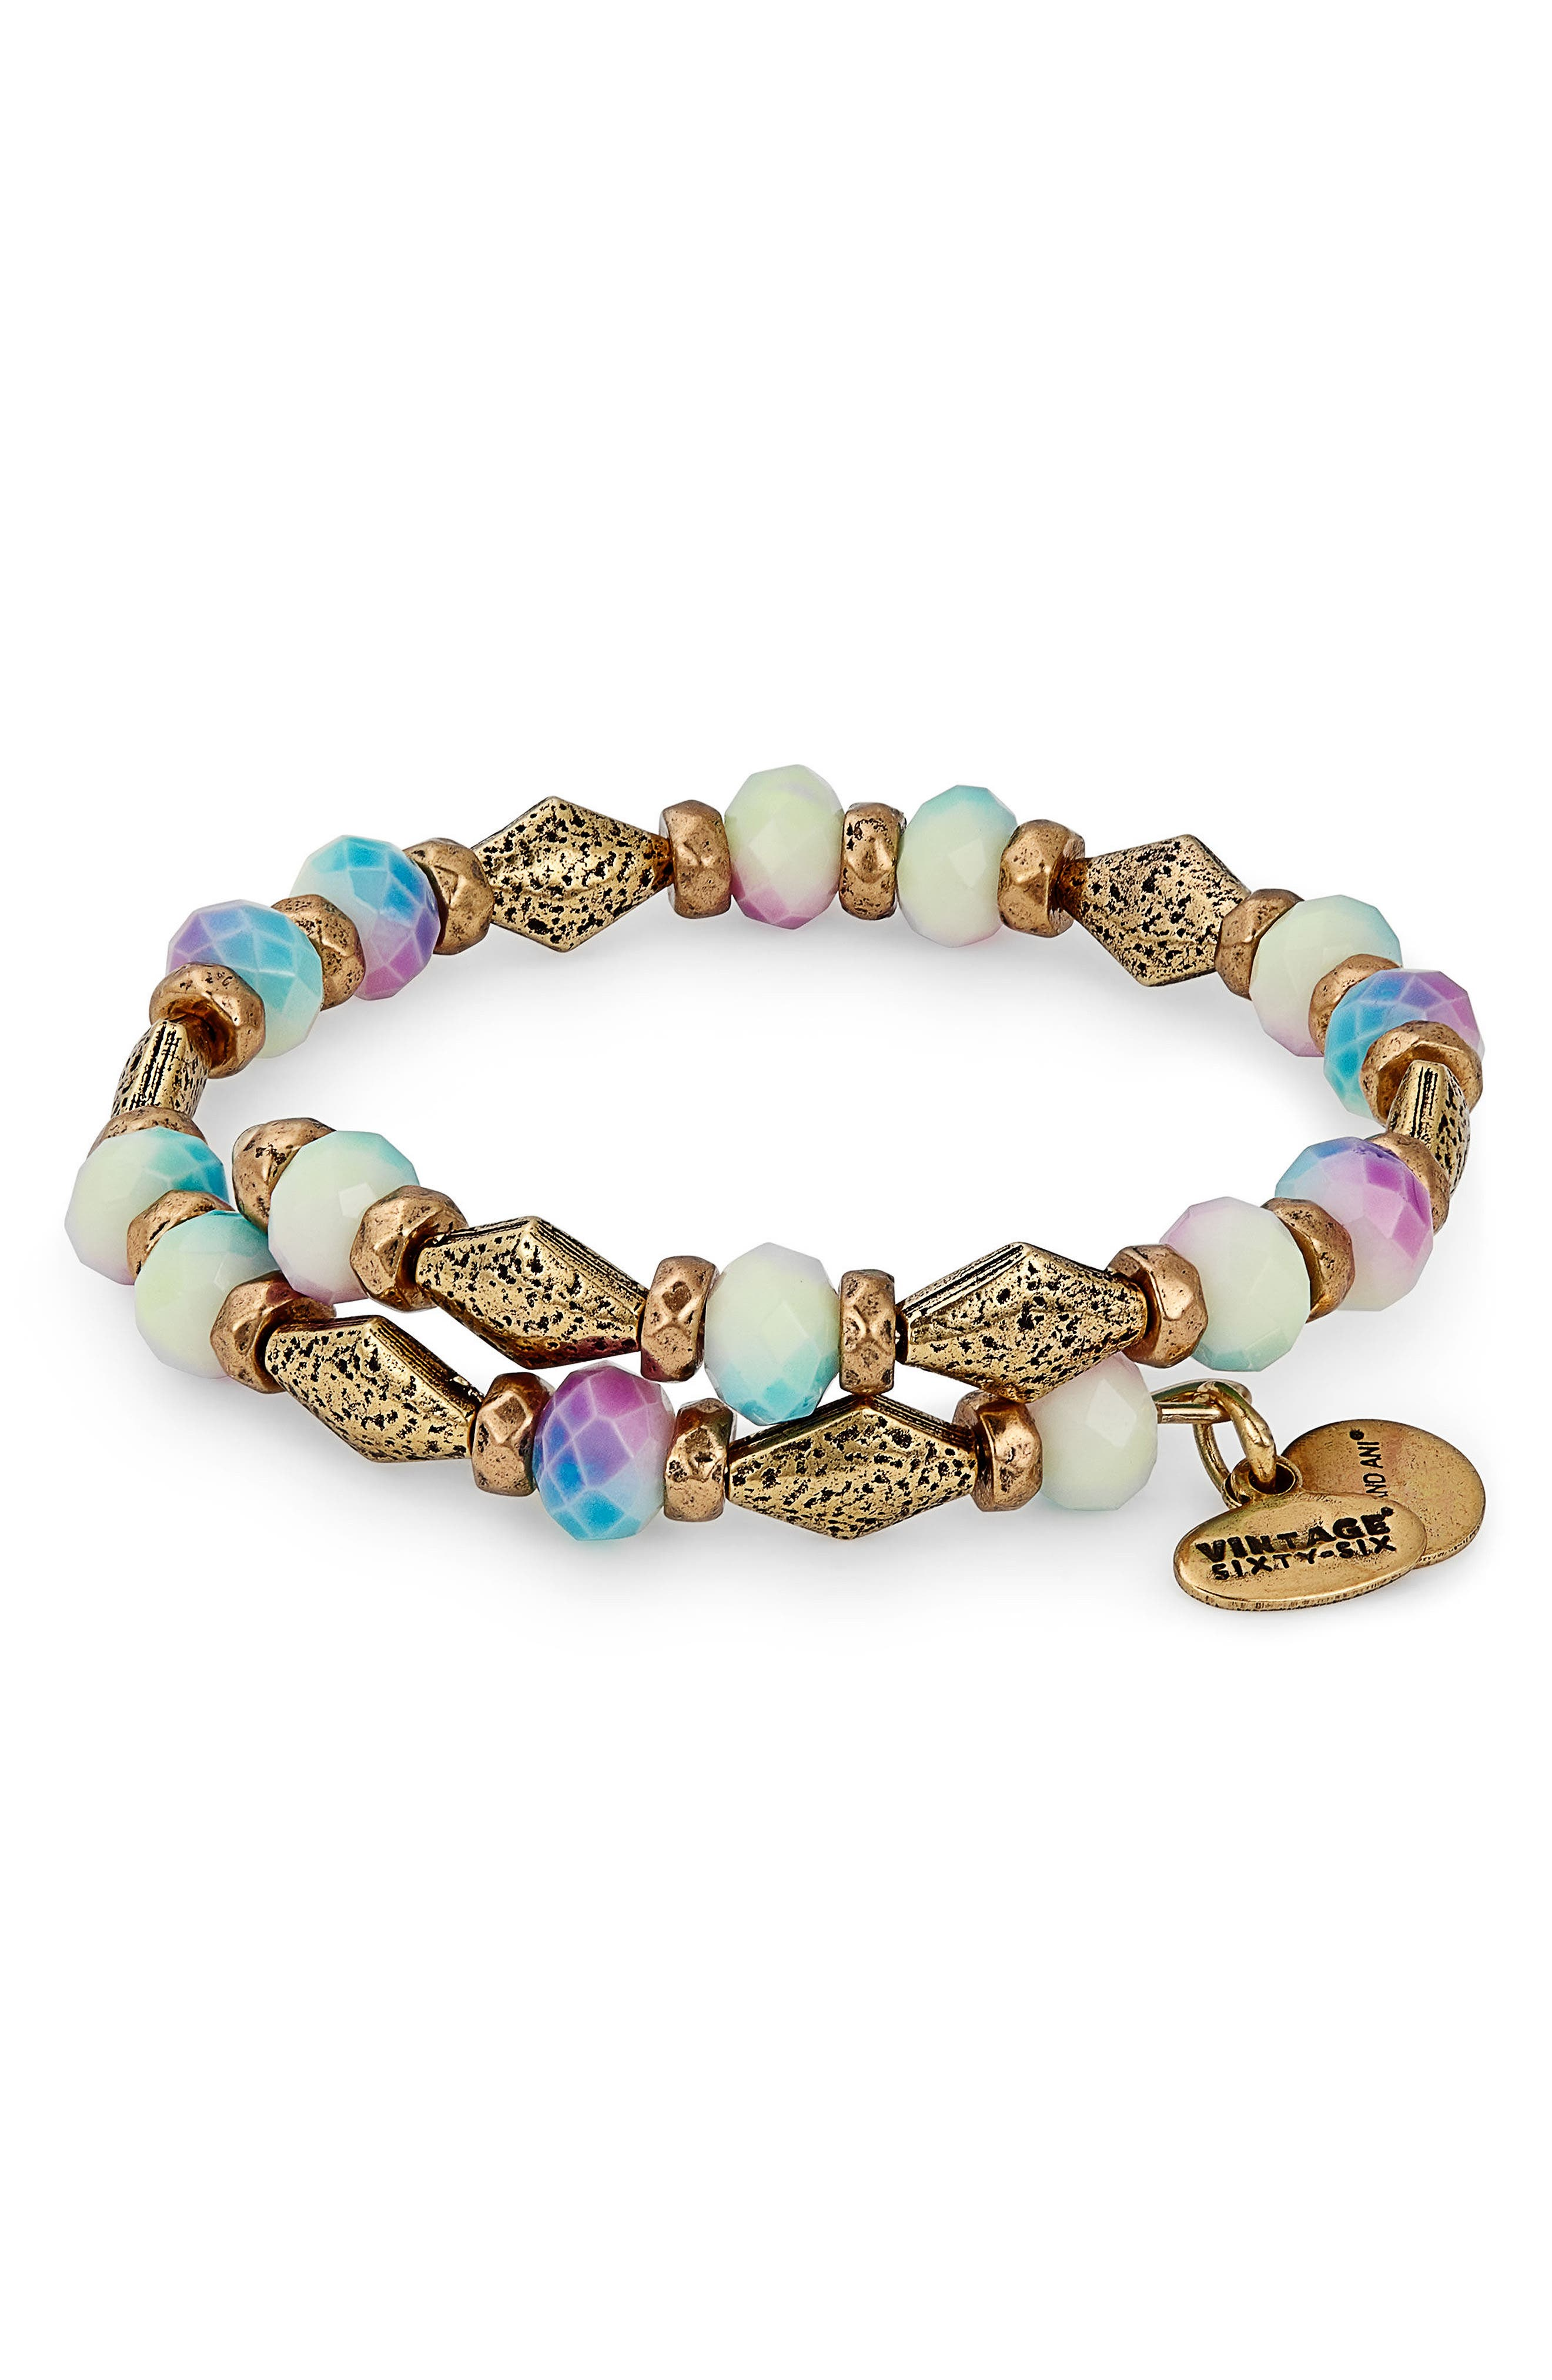 Alex and Ani Islander Wrap Bracelet